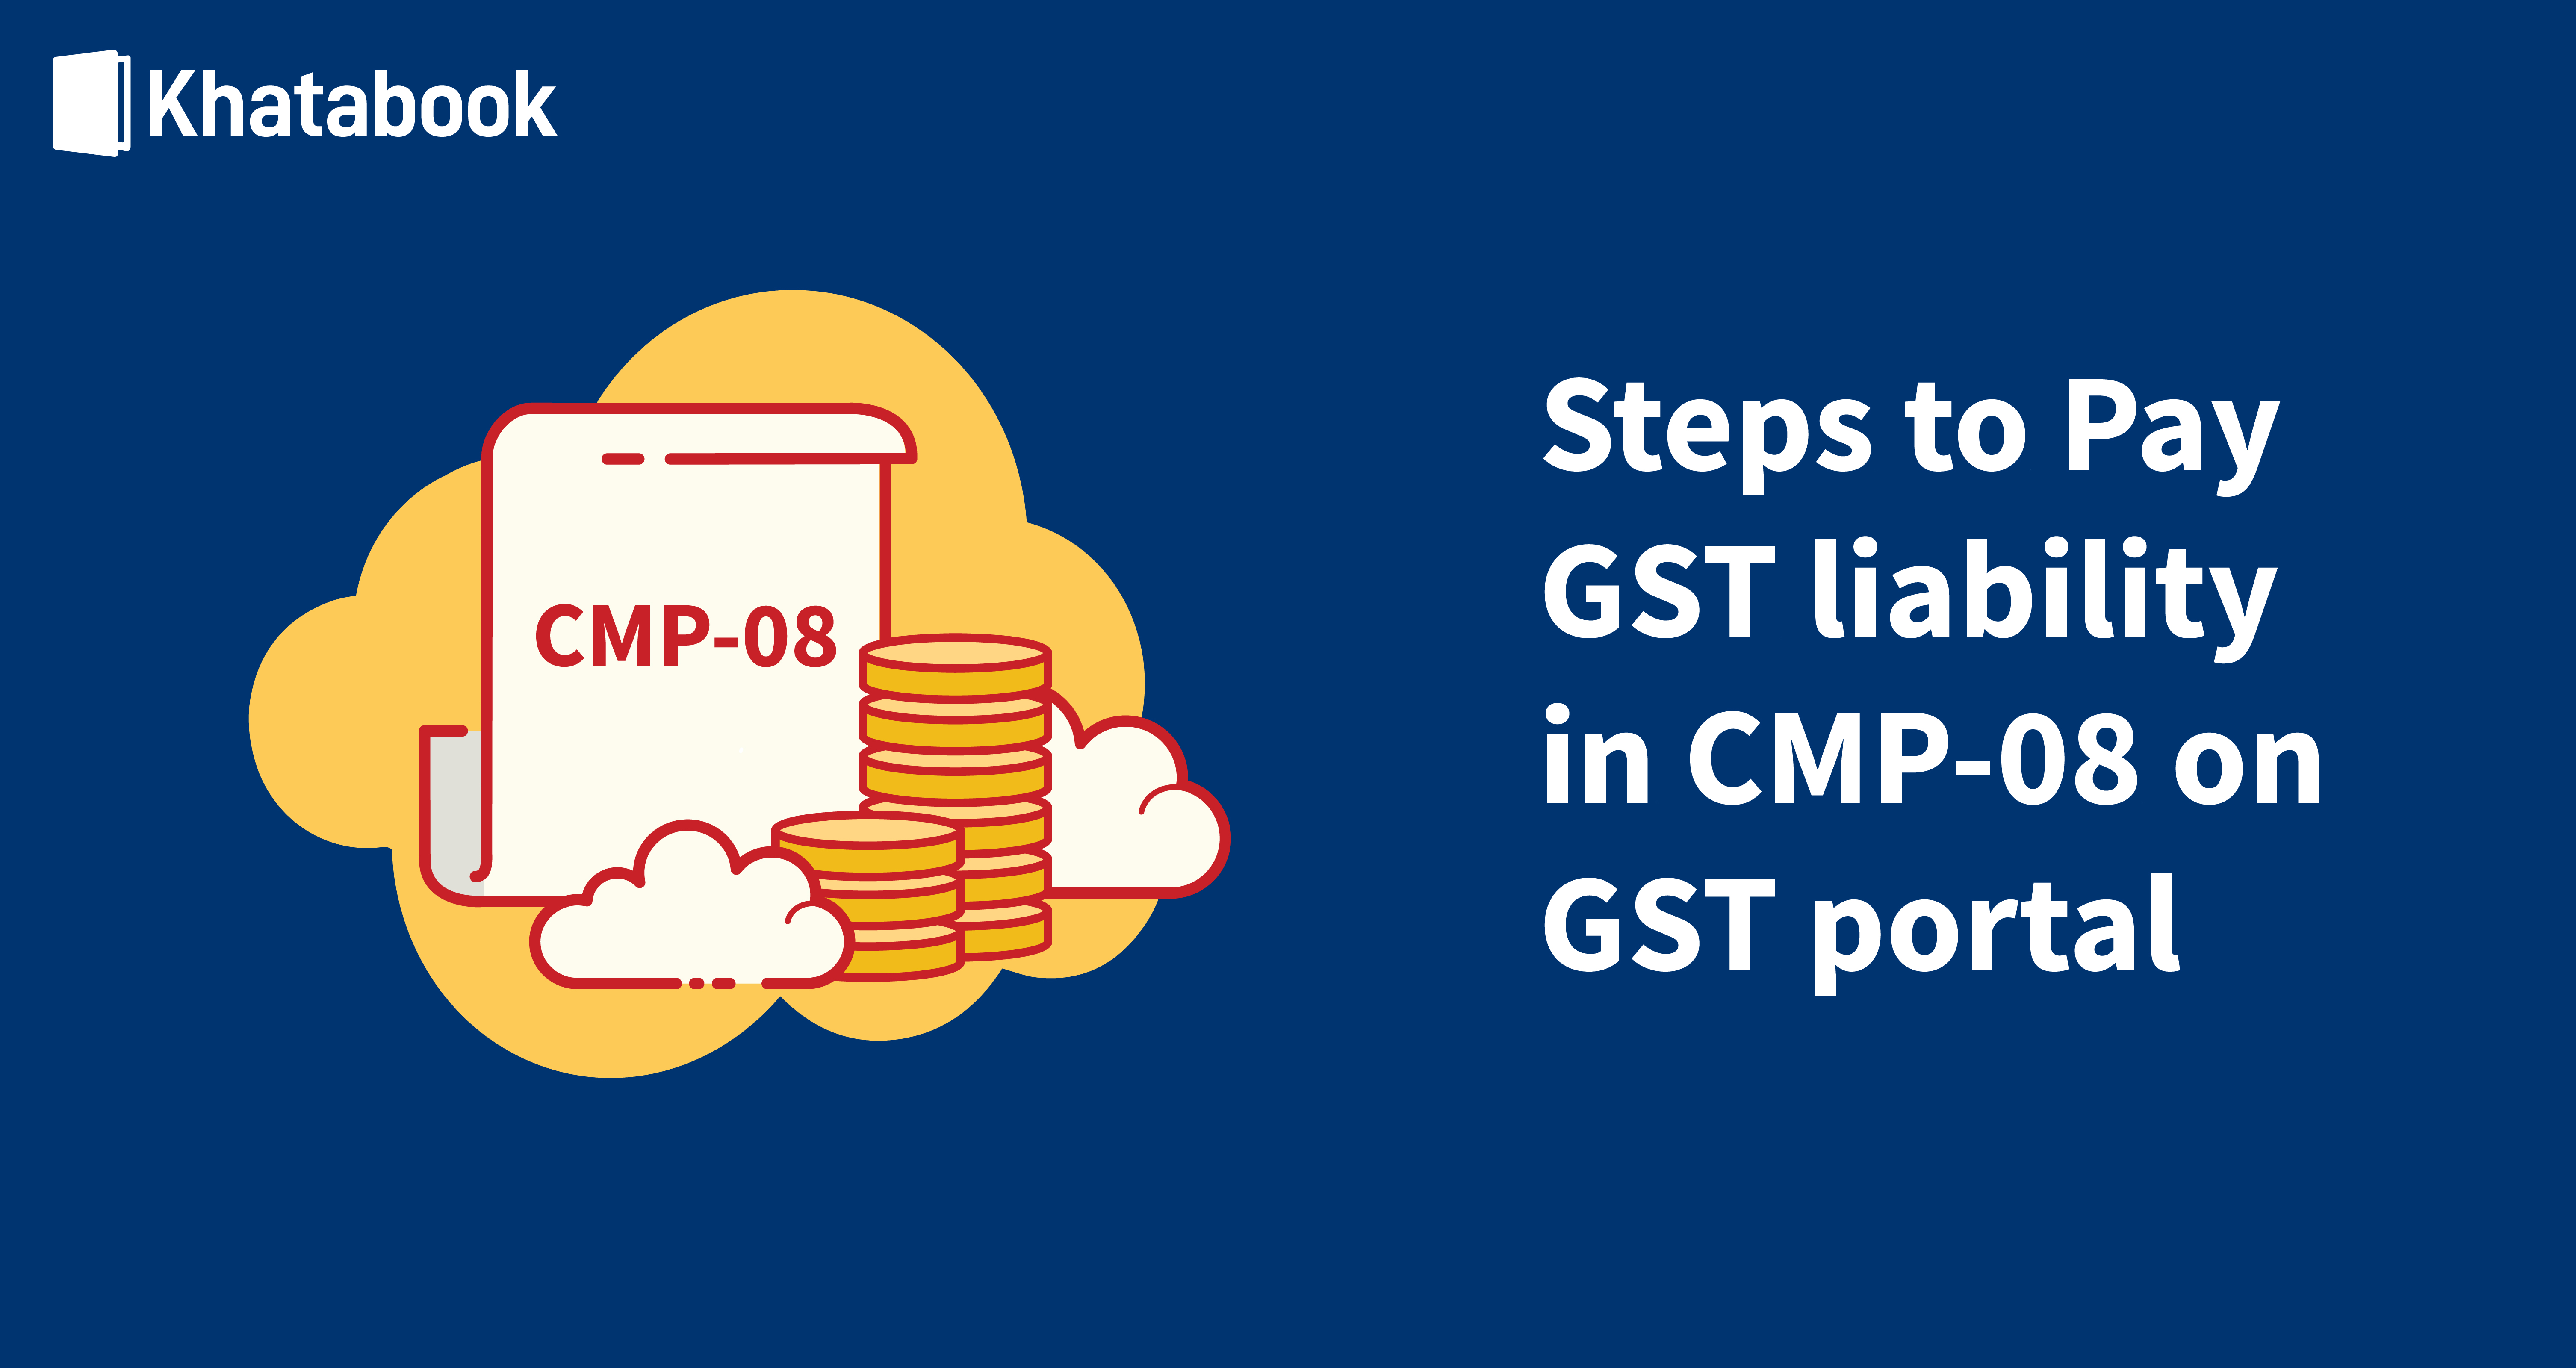 Paying GST Liability in CMP-08 on GST portal: Step-By-Step Guide